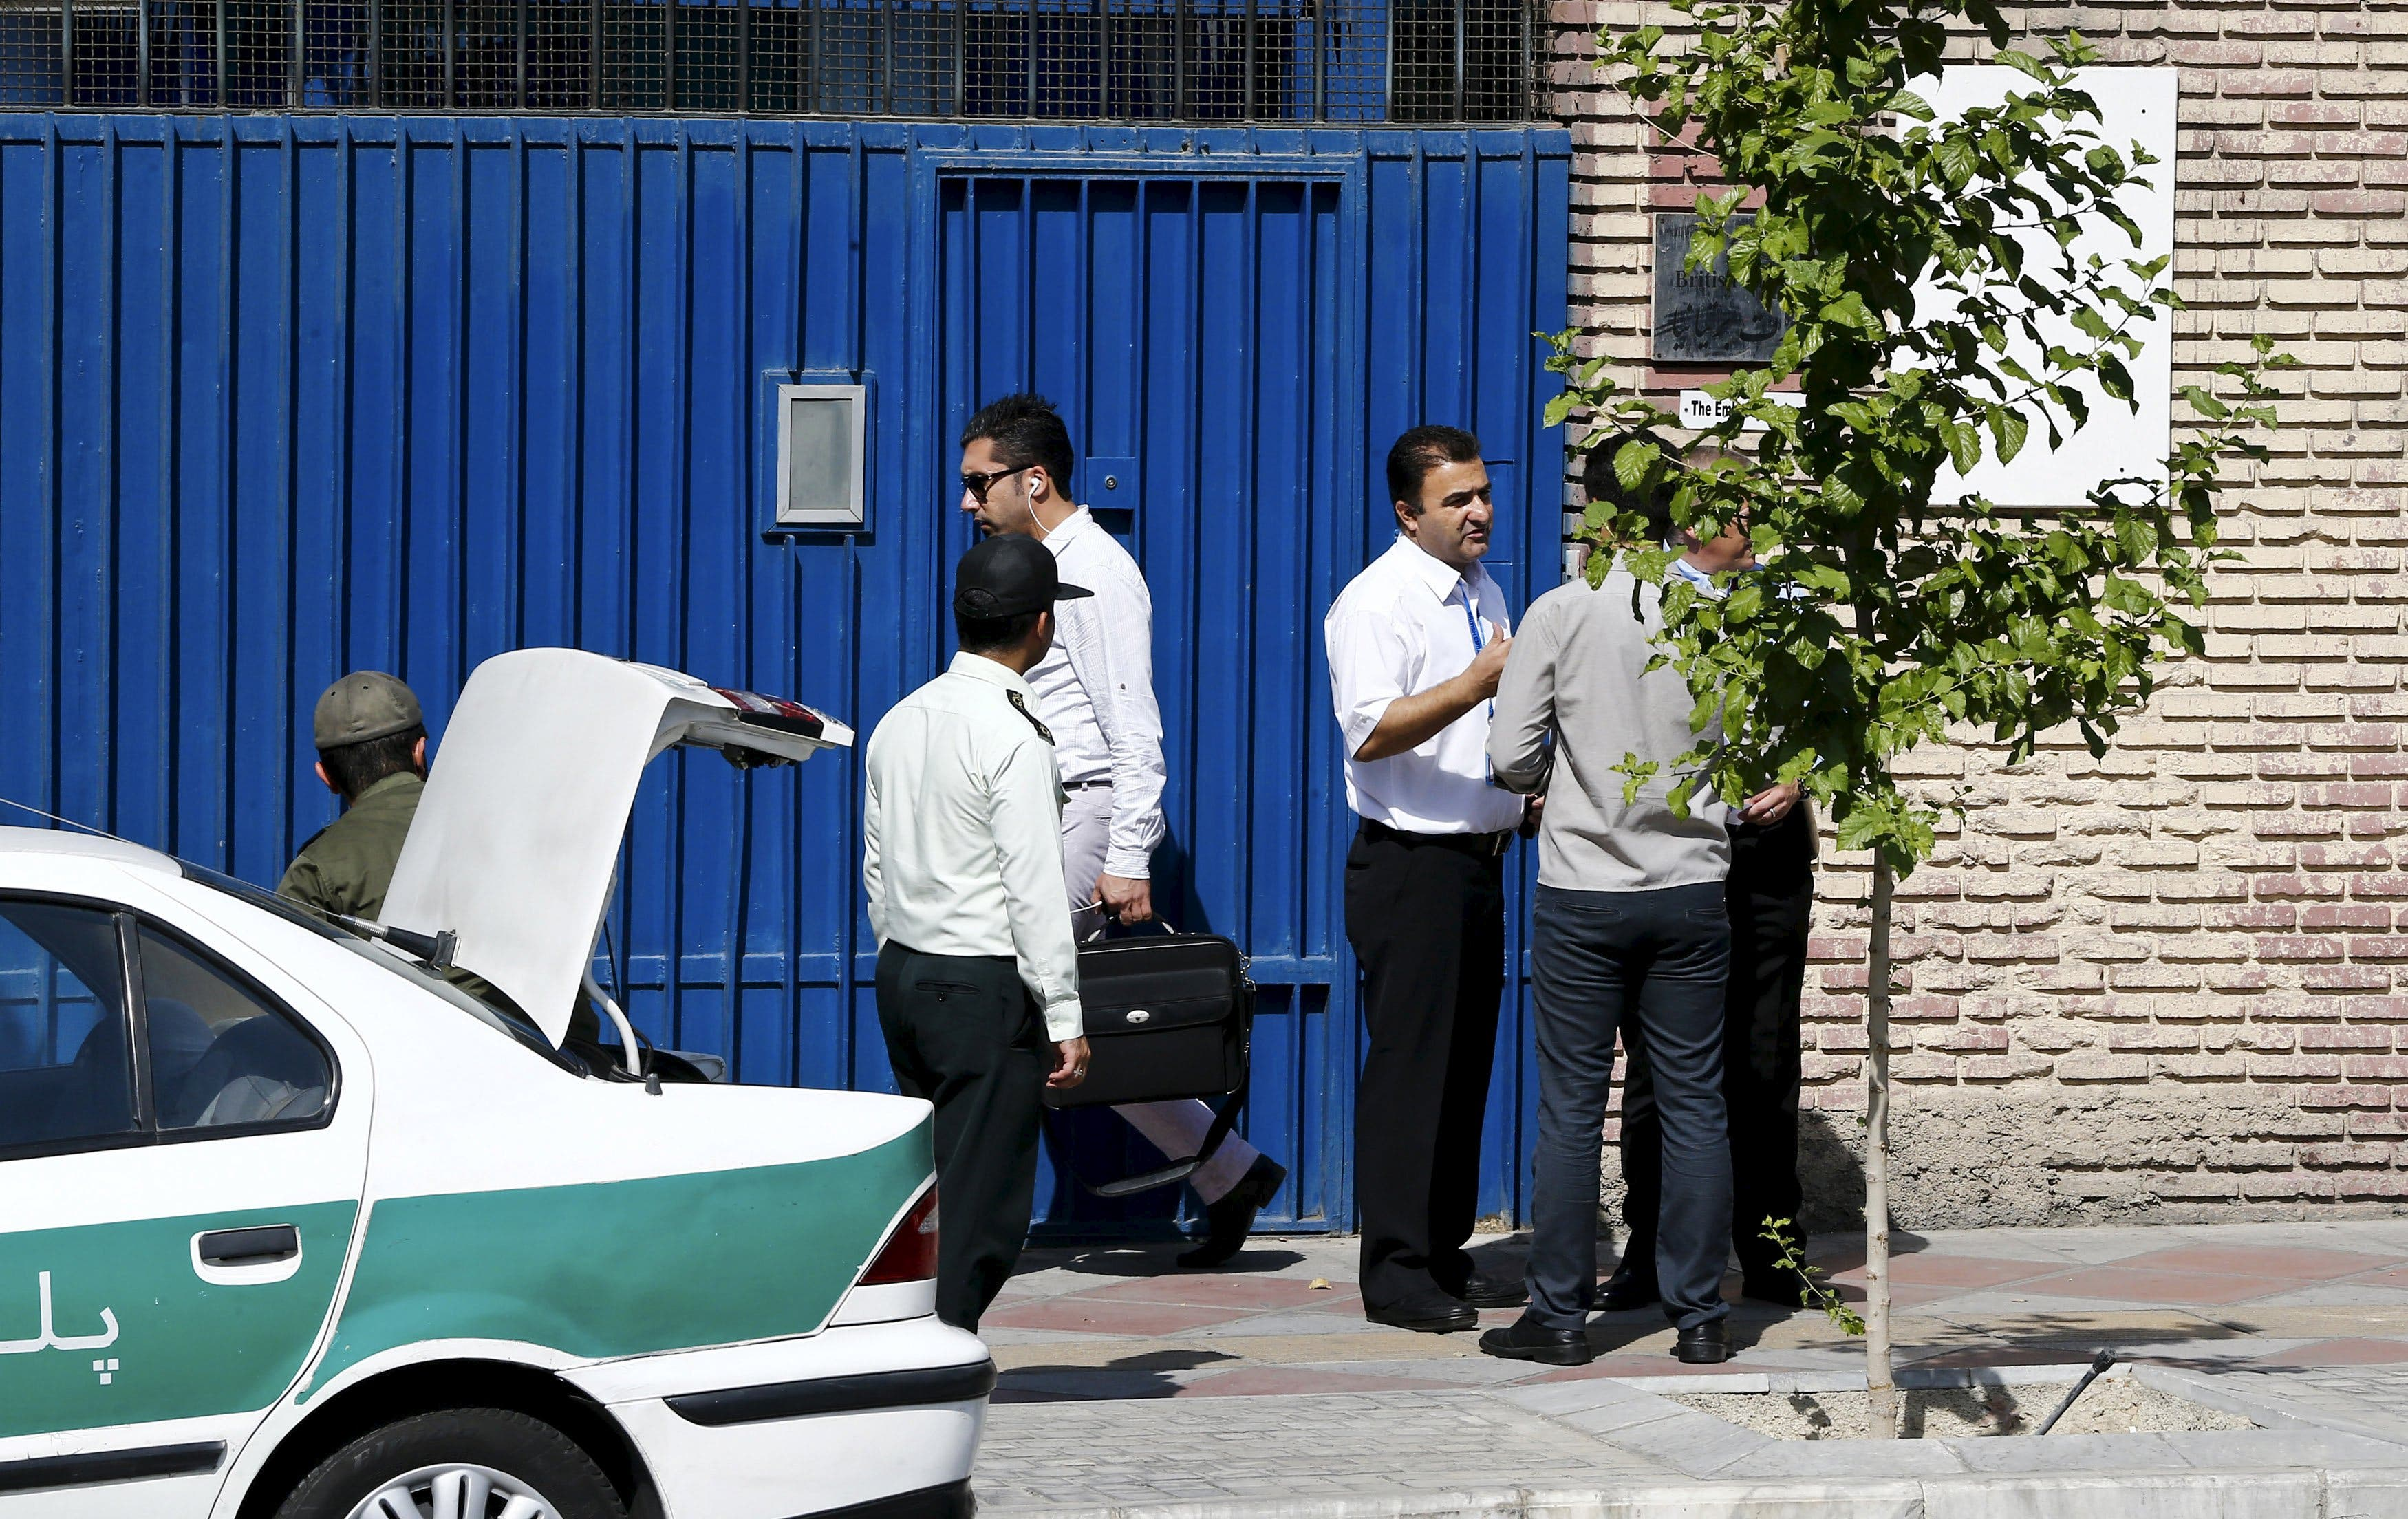 Policemen and security guards stand in front of the British Embassy in Tehran August 23, 2015. (Reuters)